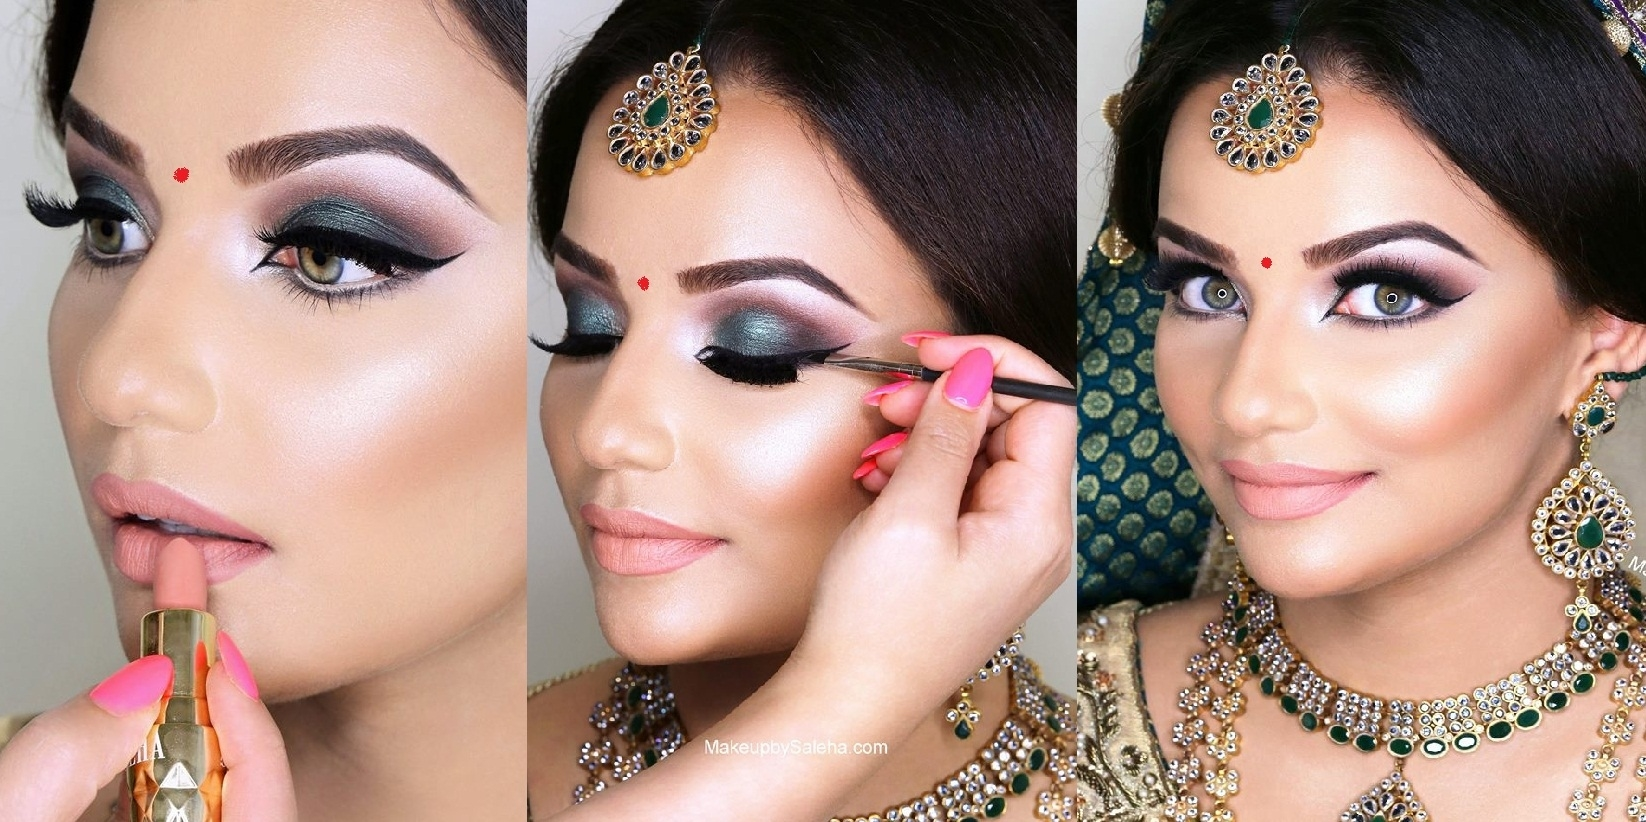 Indian Bridal Wedding Makeup Step By Step Tutorial 2019 With inside Indian Bridal Makeup Step By Step Pictures